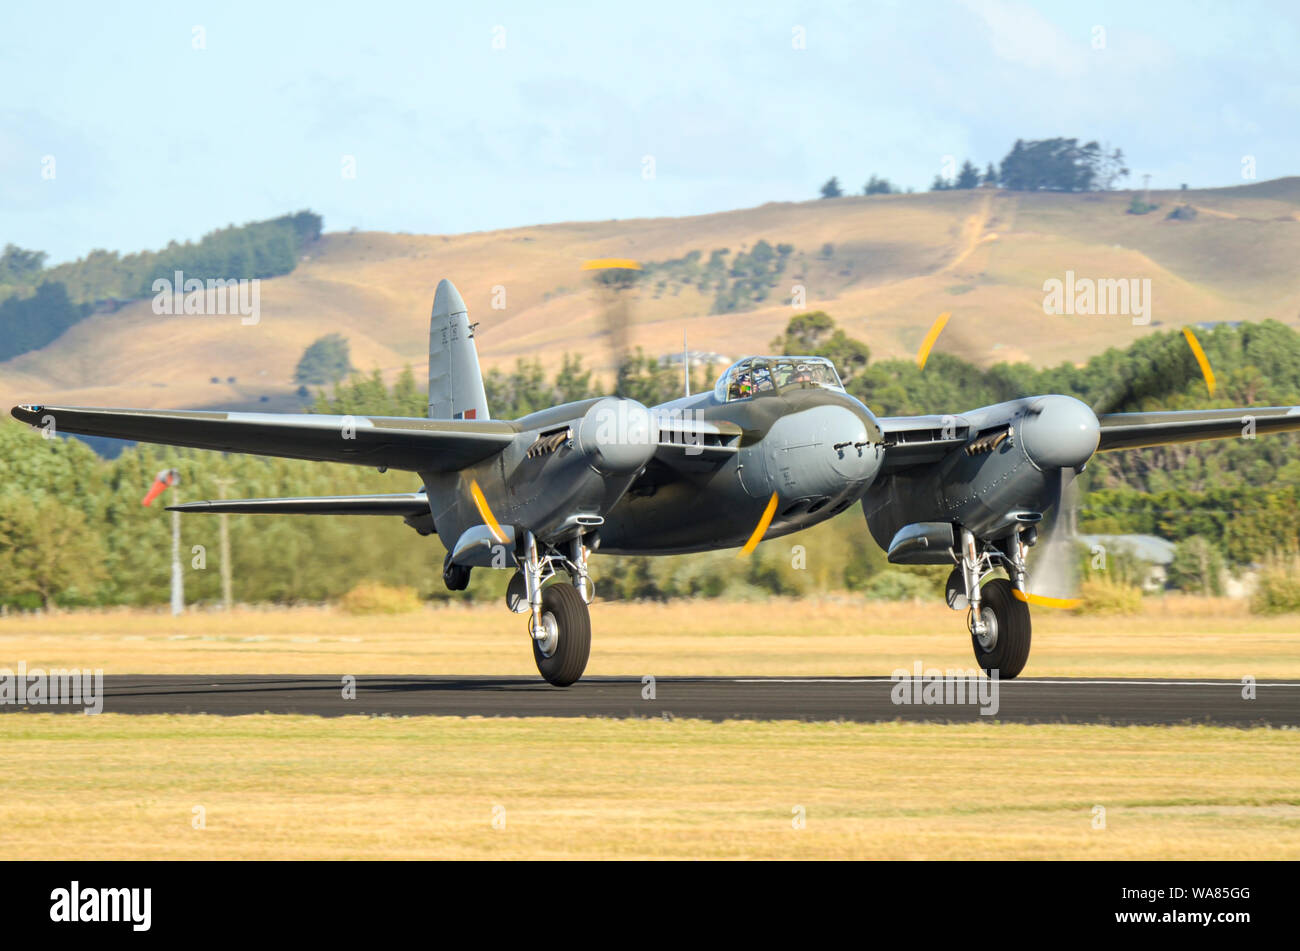 de-havilland-dh98-mosquito-second-world-war-fighter-plane-at-wings-over-wairarapa-airshow-hood-aerodrome-masterton-new-zealand-take-off-roll-WA85GG.jpg